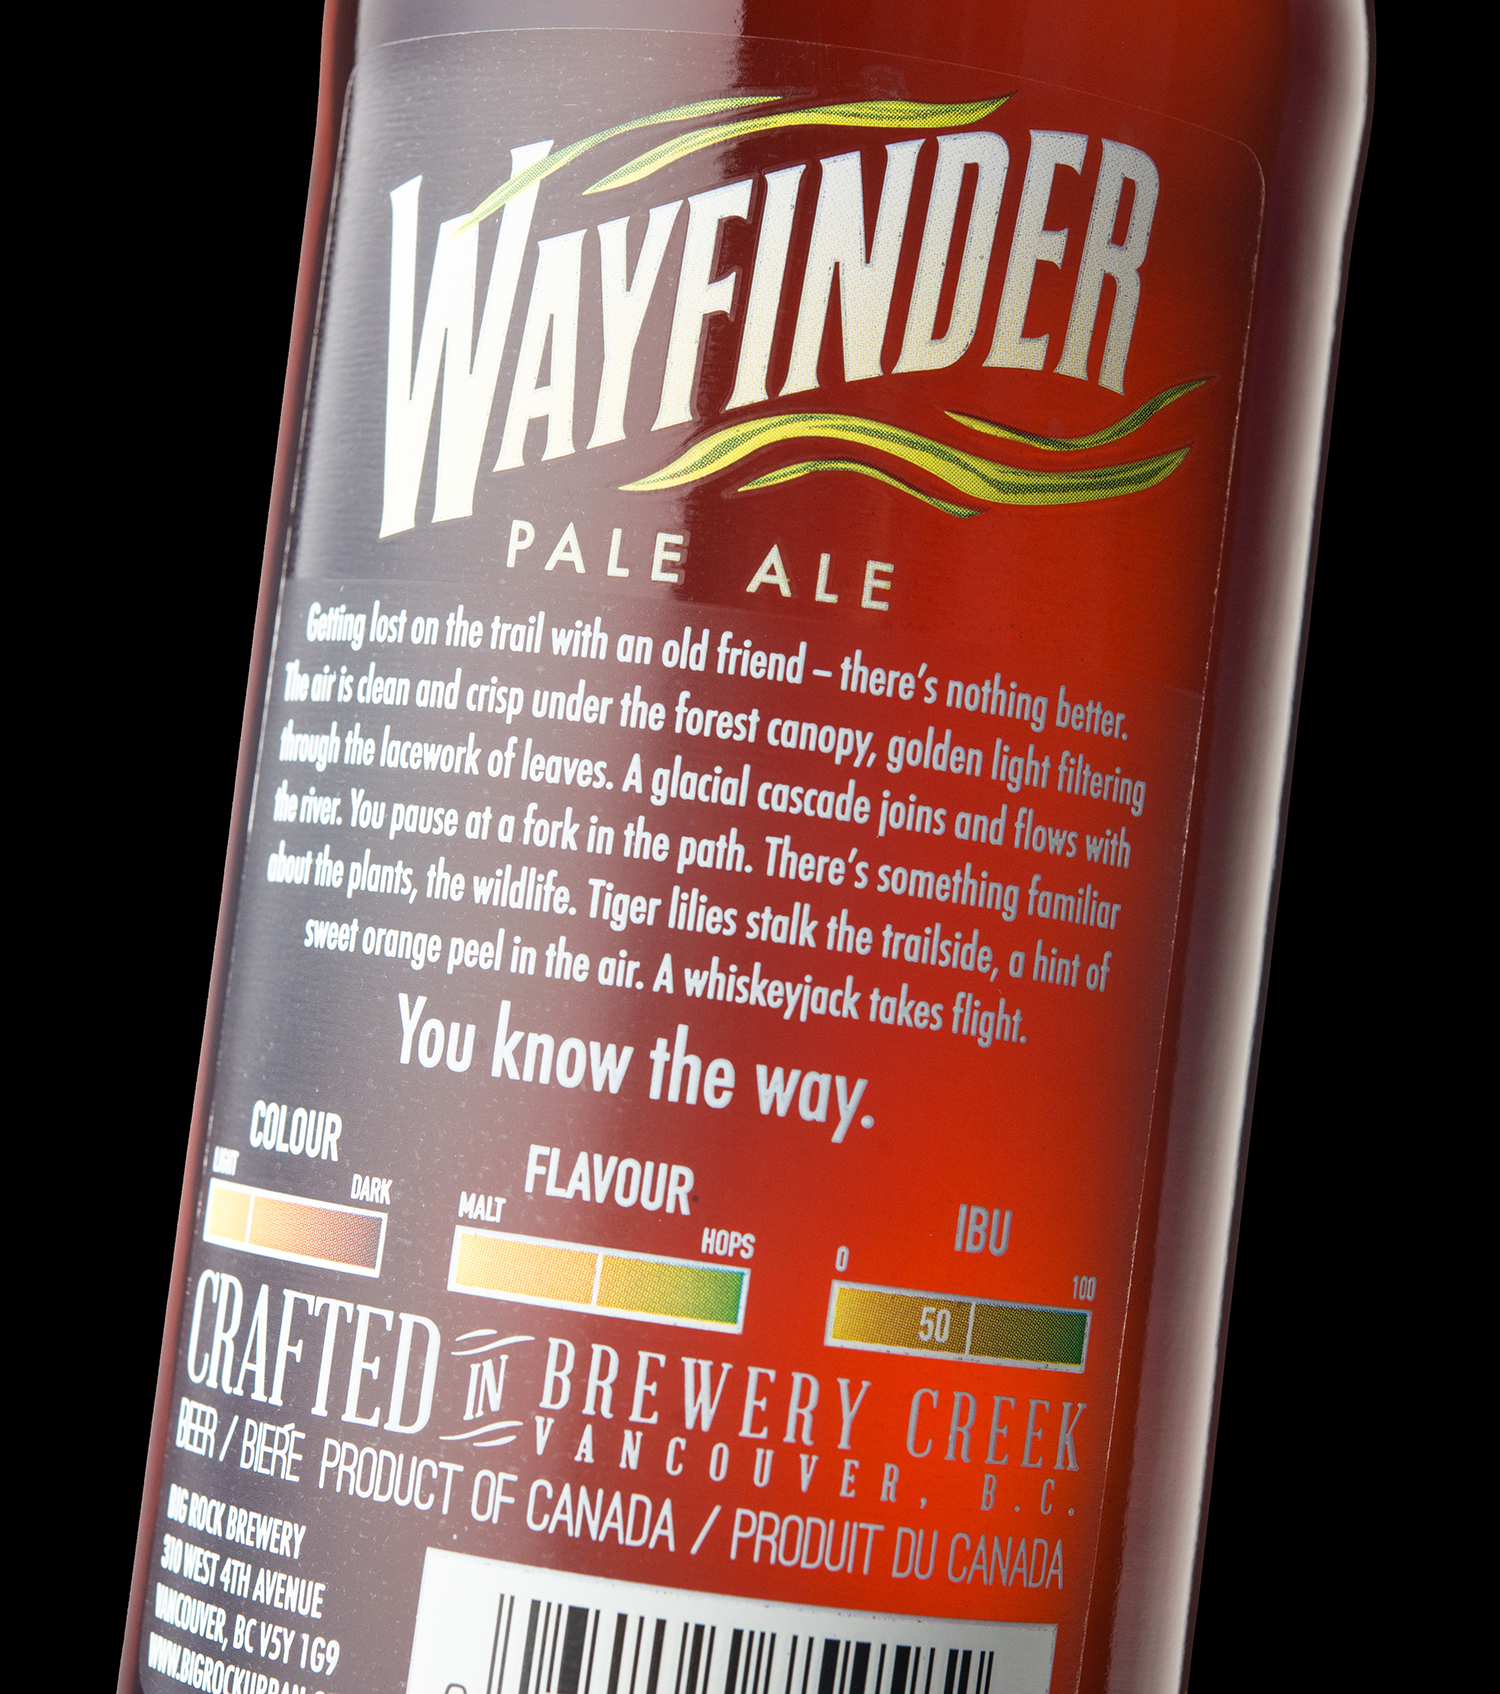 Packaging Design for Big Rock Brewery's Wayfinder Pale Ale